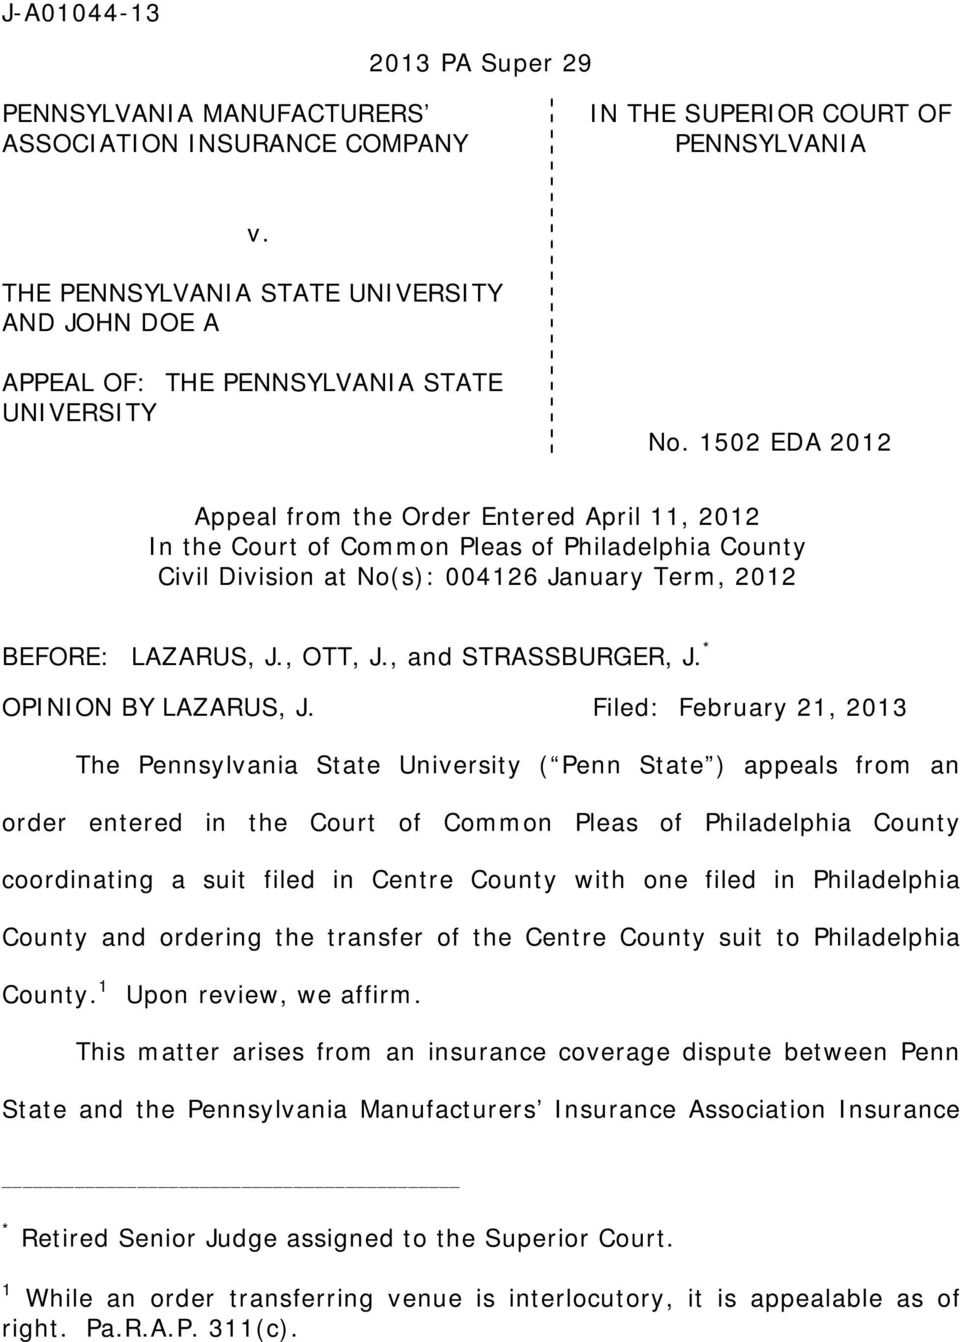 1502 EDA 2012 Appeal from the Order Entered April 11, 2012 In the Court of Common Pleas of Philadelphia County Civil Division at No(s): 004126 January Term, 2012 BEFORE: LAZARUS, J., OTT, J.